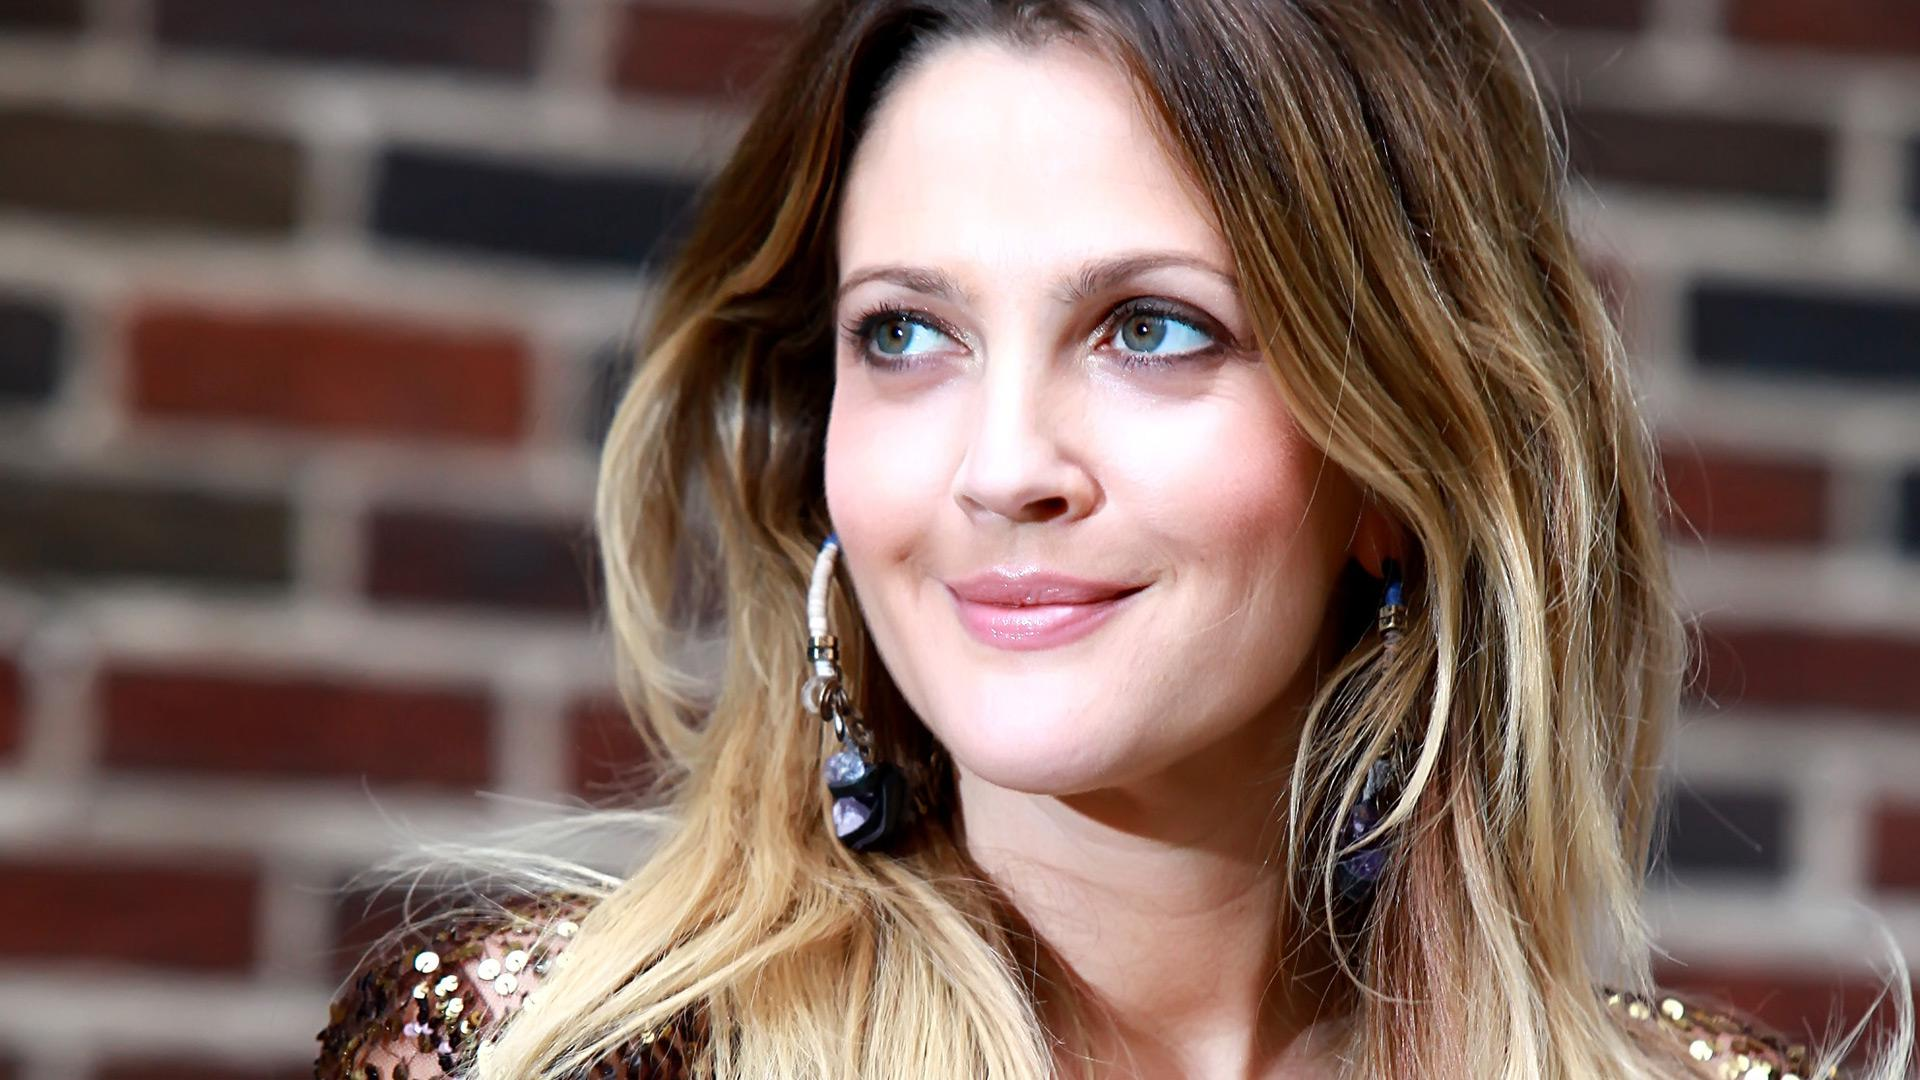 Hairstyles for round faces: The best cuts and styles for women ...